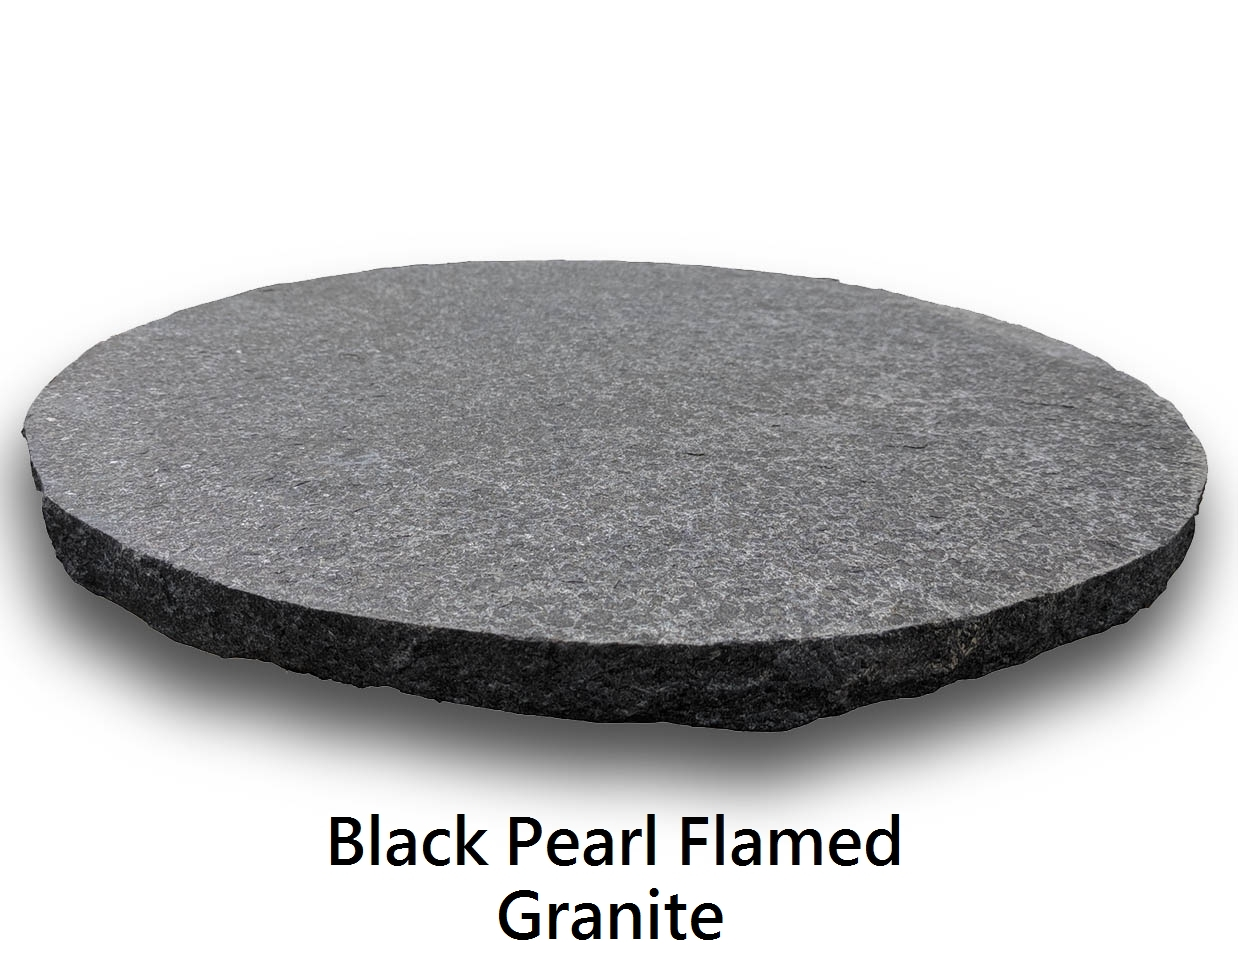 Granite Stepping Stones : Black pearl flamed granite stepping stones